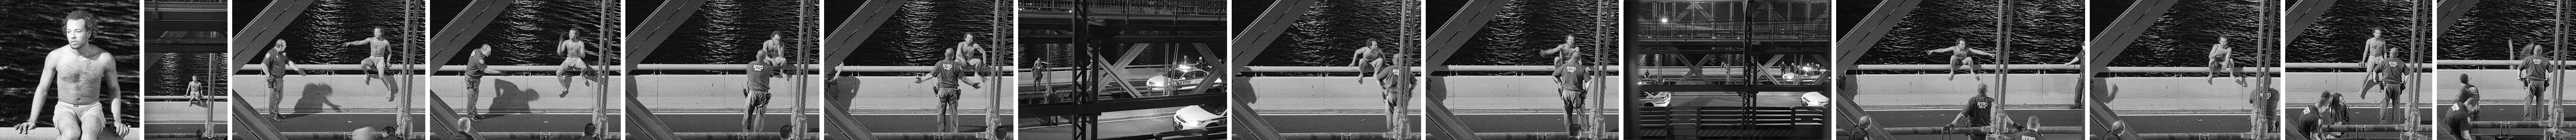 Photo series of man on railing of Williamsburg Bridge, arguing with police, eventually jumping off.